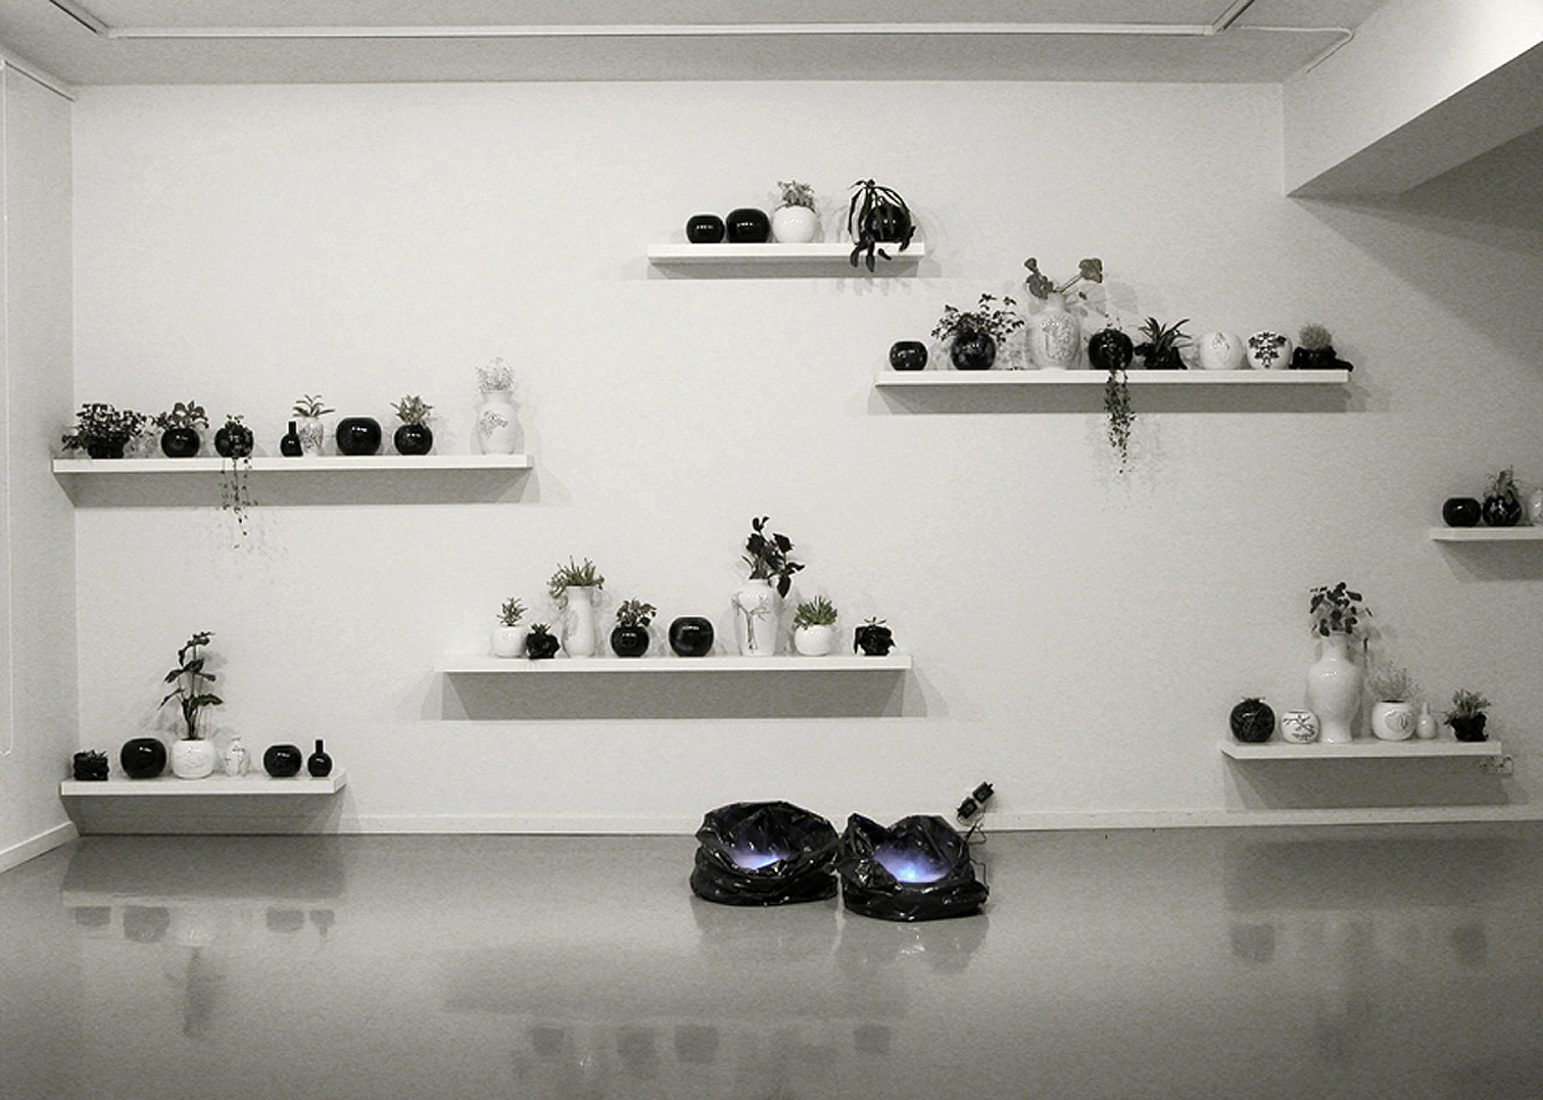 Grotesque & Arabesque, installation view: hand painted porcelain vases, plants, trash bags, air humidifiers, water